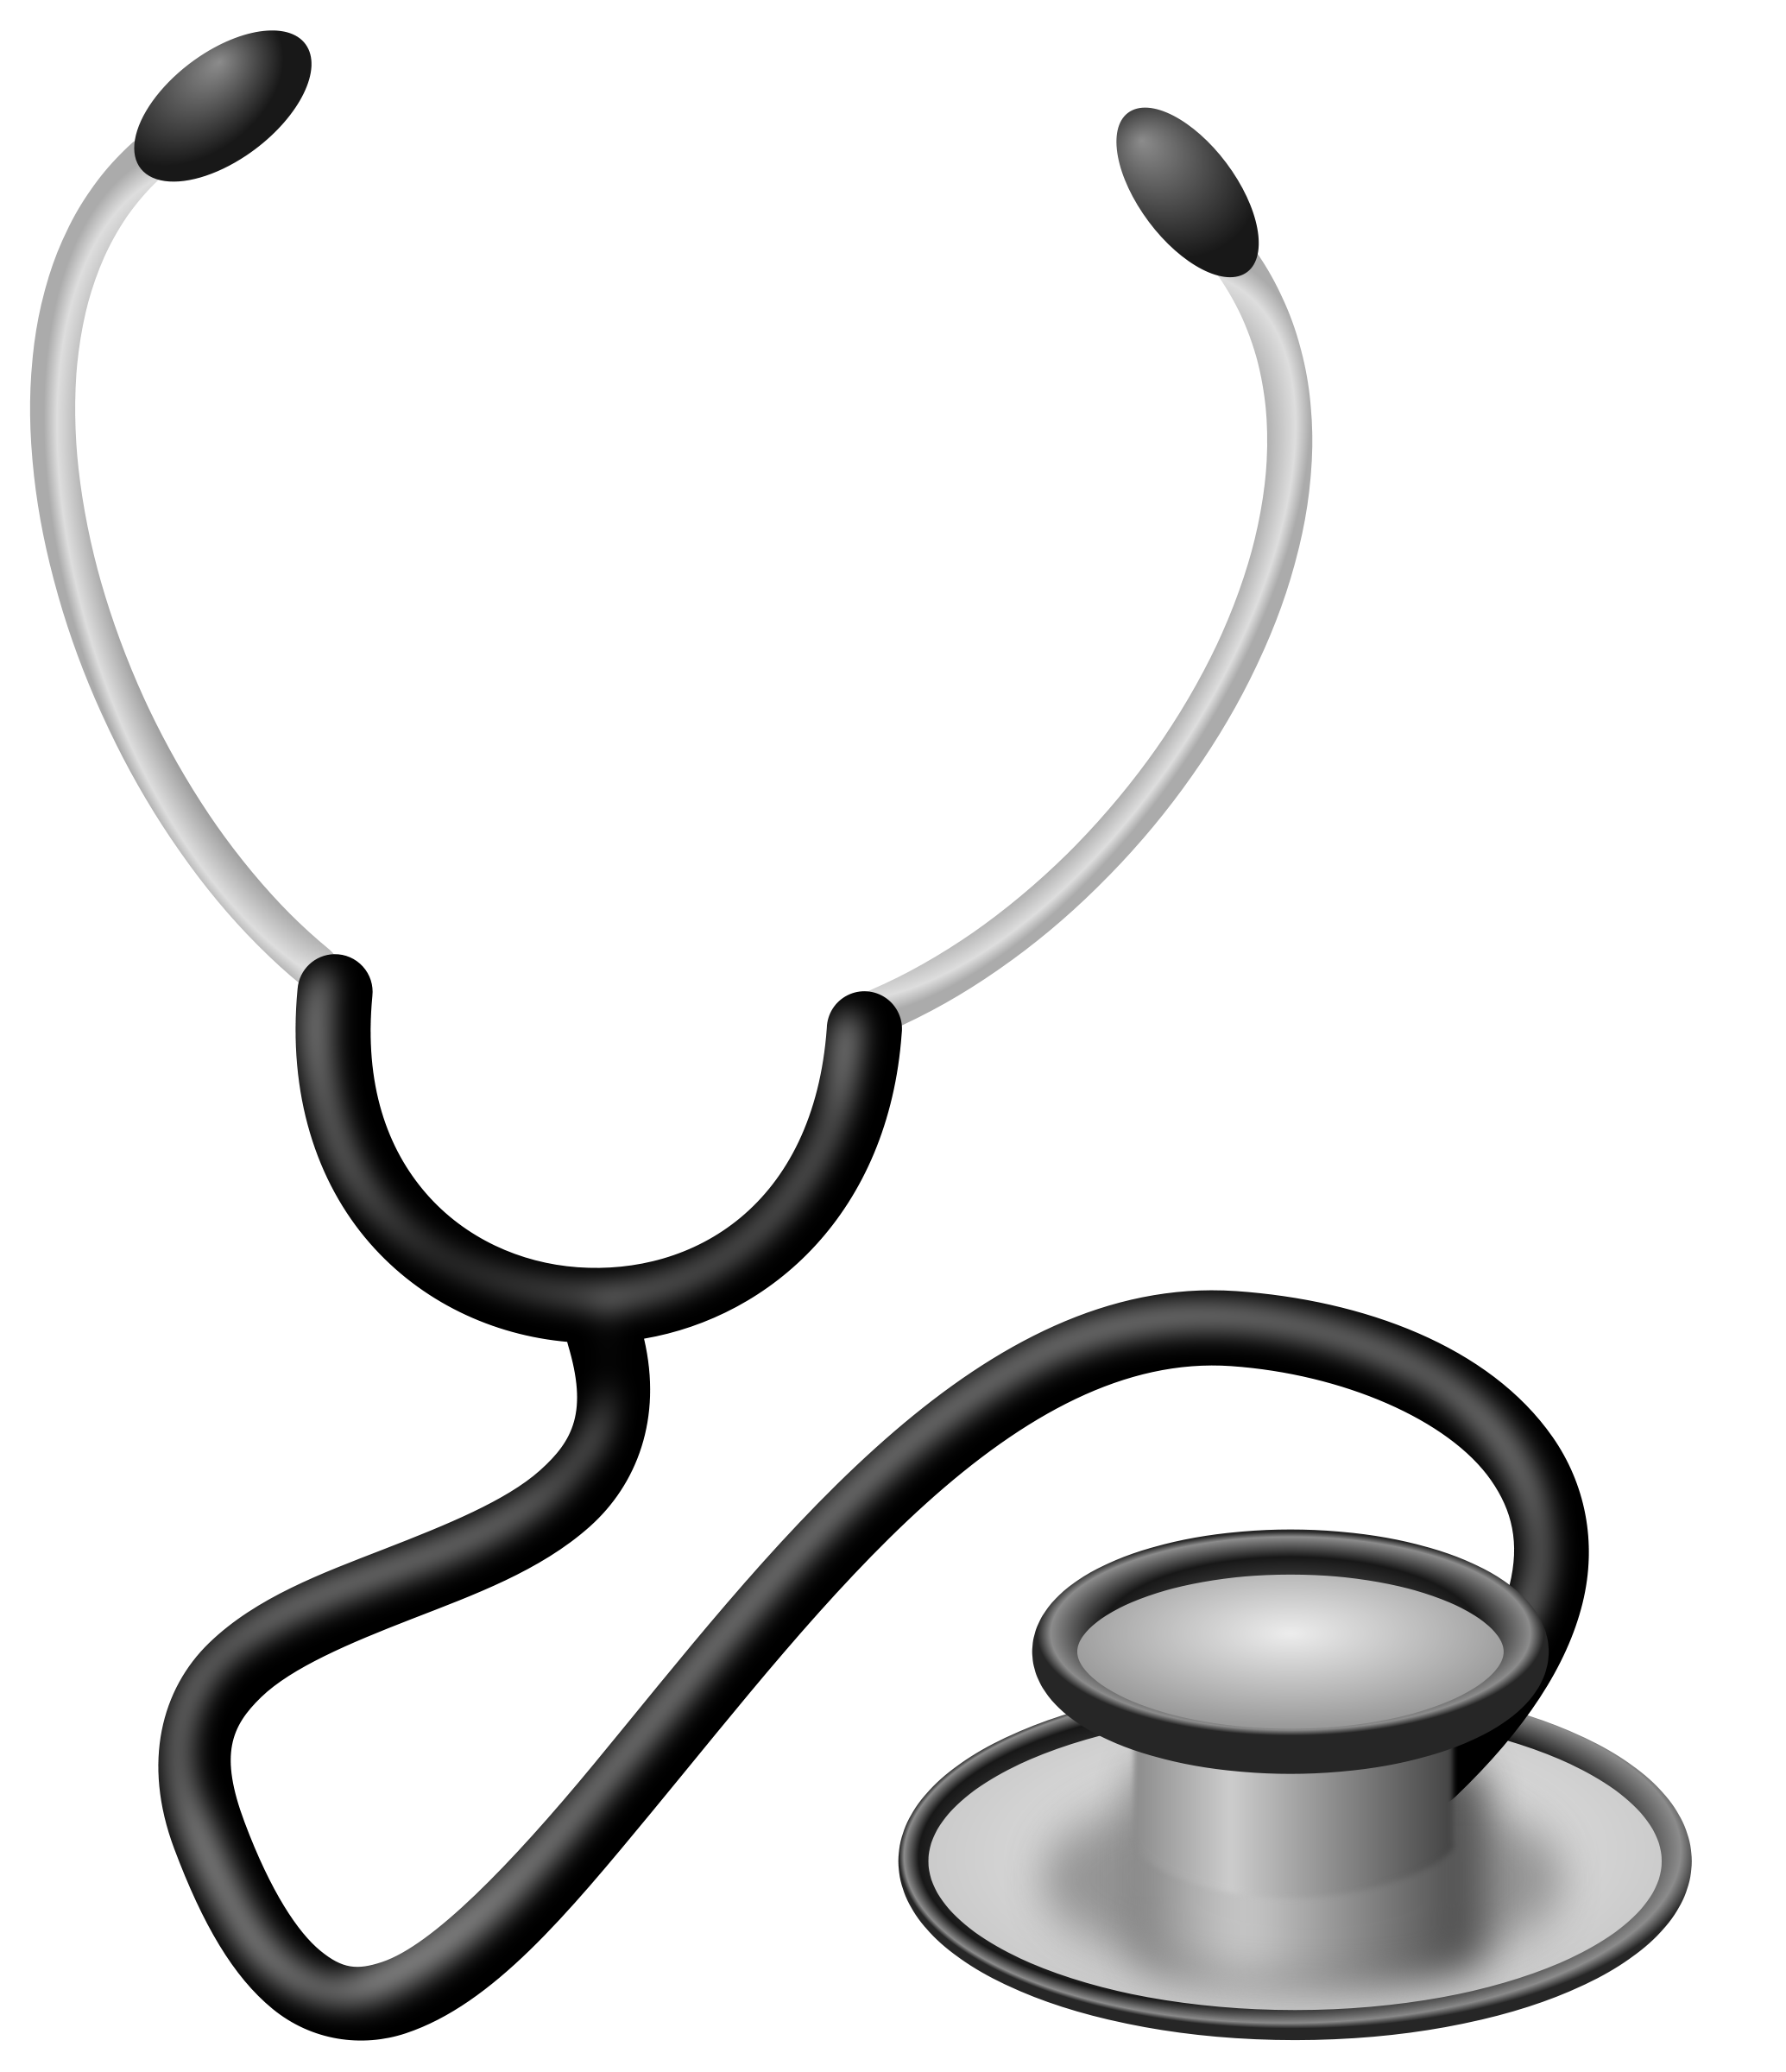 Doctor Stethoscope Clip Art N7 free image.